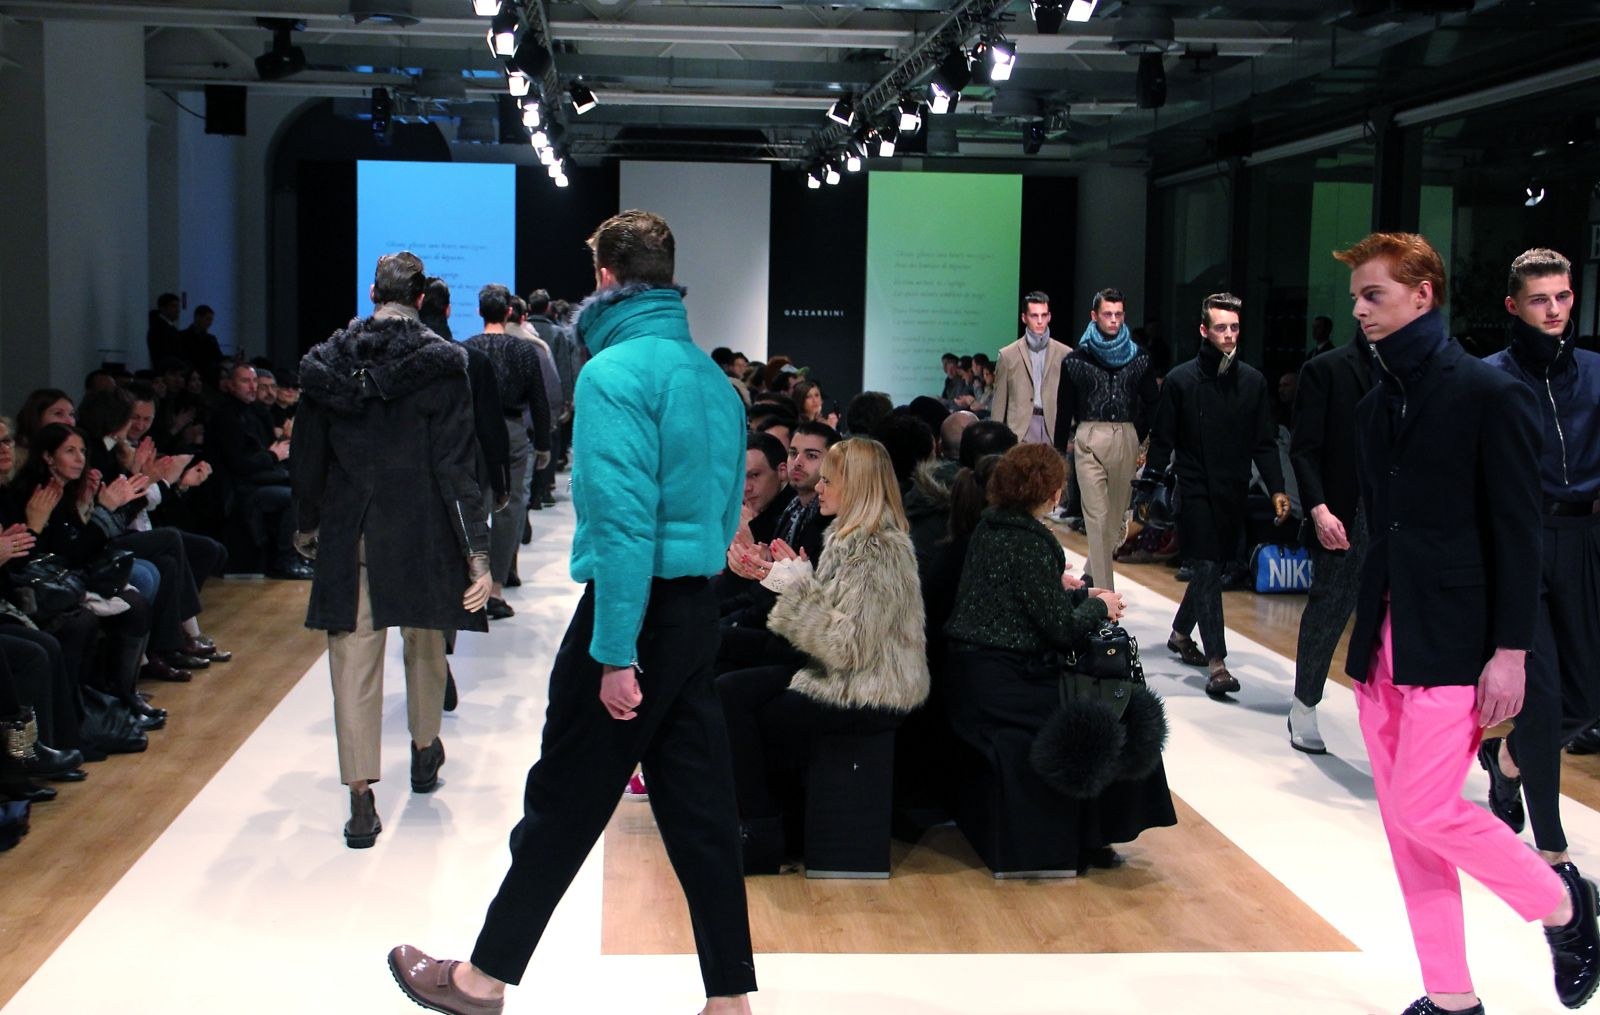 Milano Fashion Week Gazzarrini Fashion Show